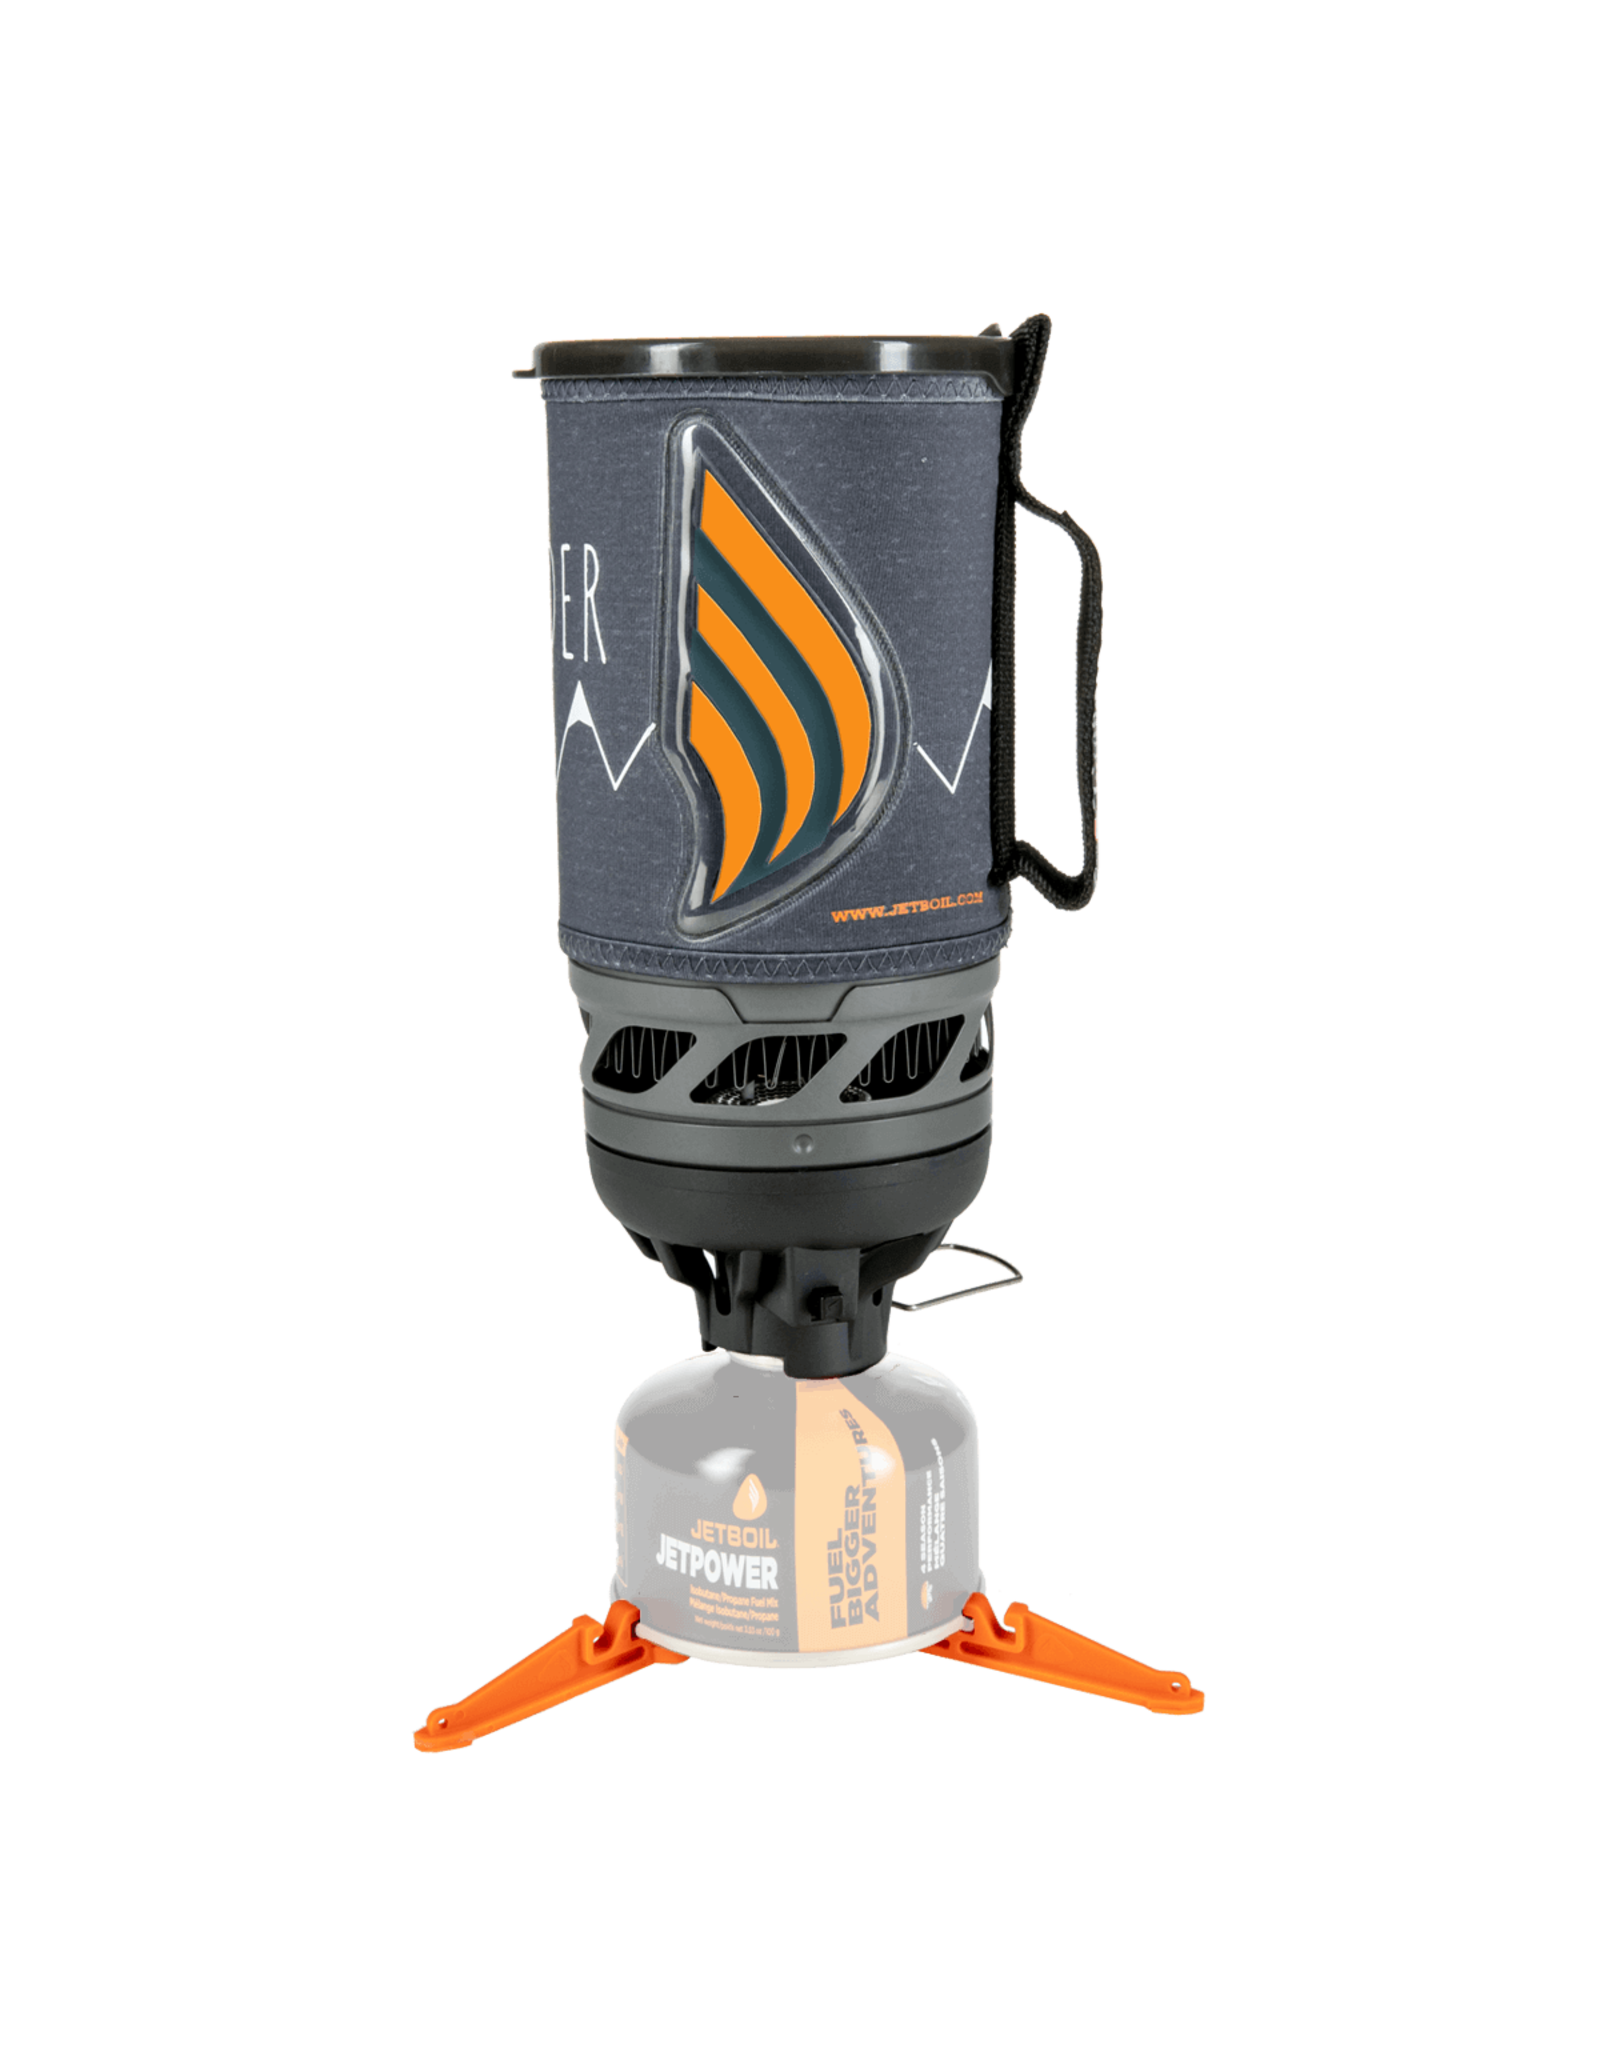 JetBoil Flash 1L personal cook system